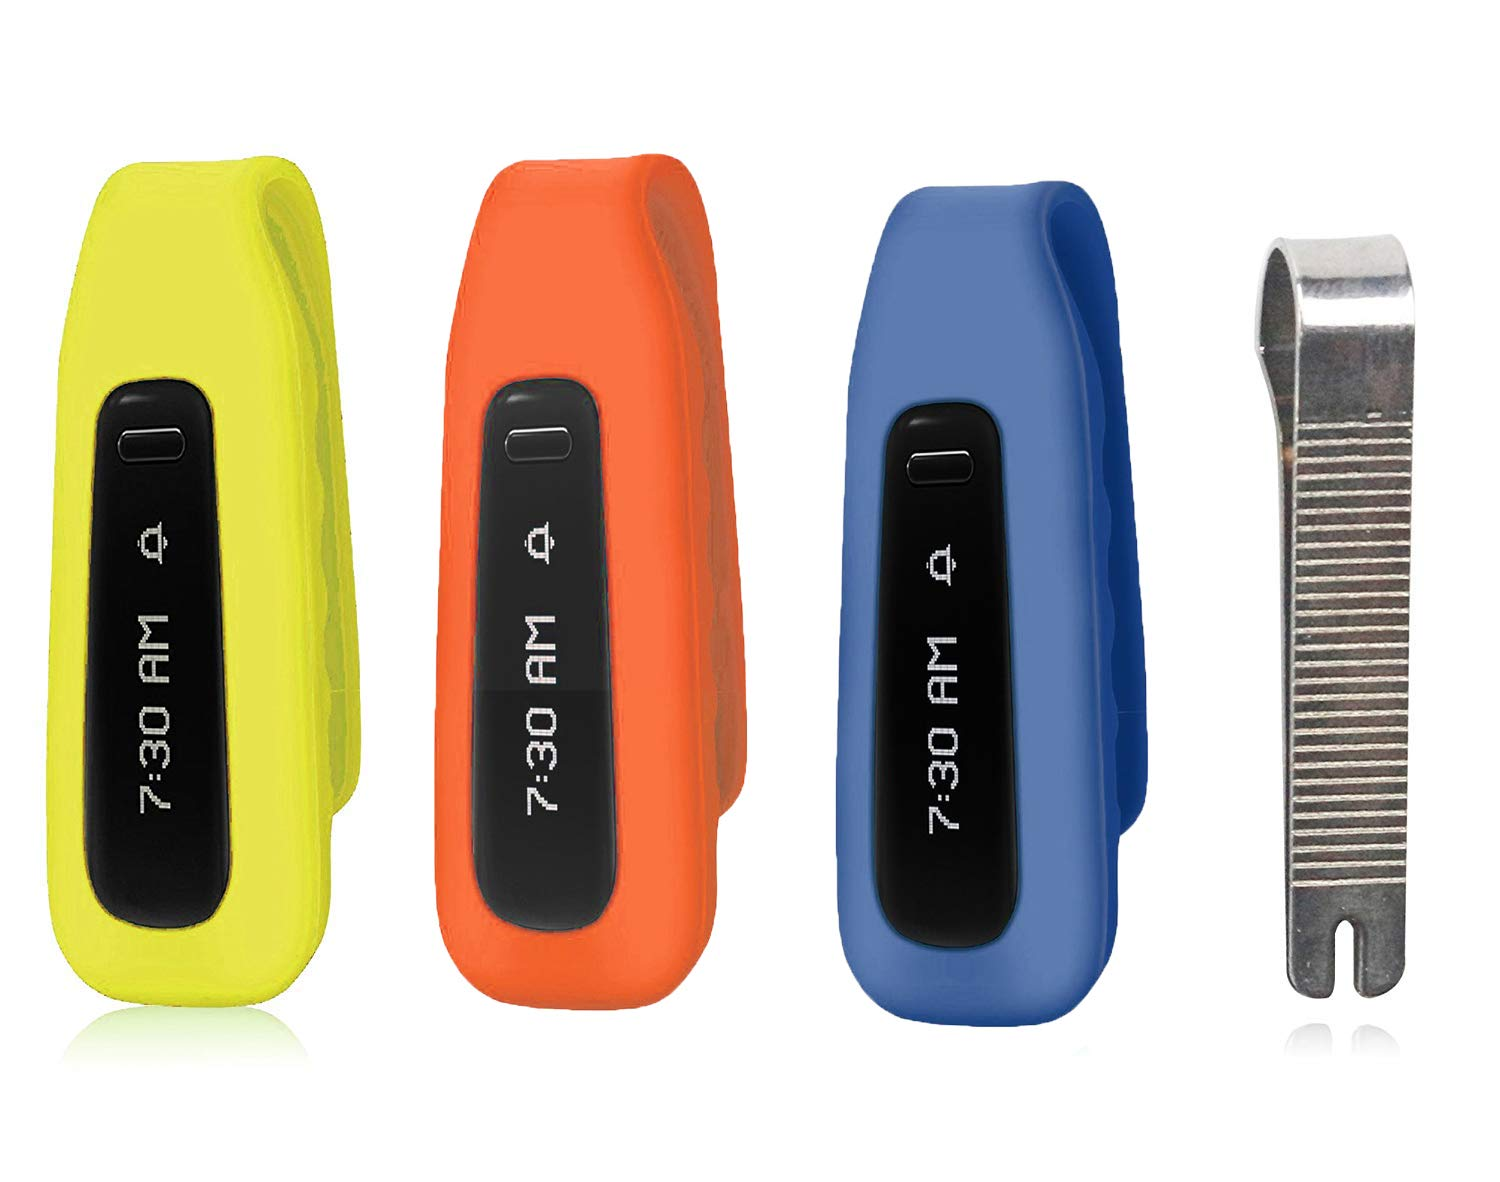 MDW 3 Pcs Silicon Clip for Fitbit ONE New Version Replacement Clip Accessory Pack for Fitbit ONE Anti Slip Off and Improved Cap Design /¡/ Orange Navy